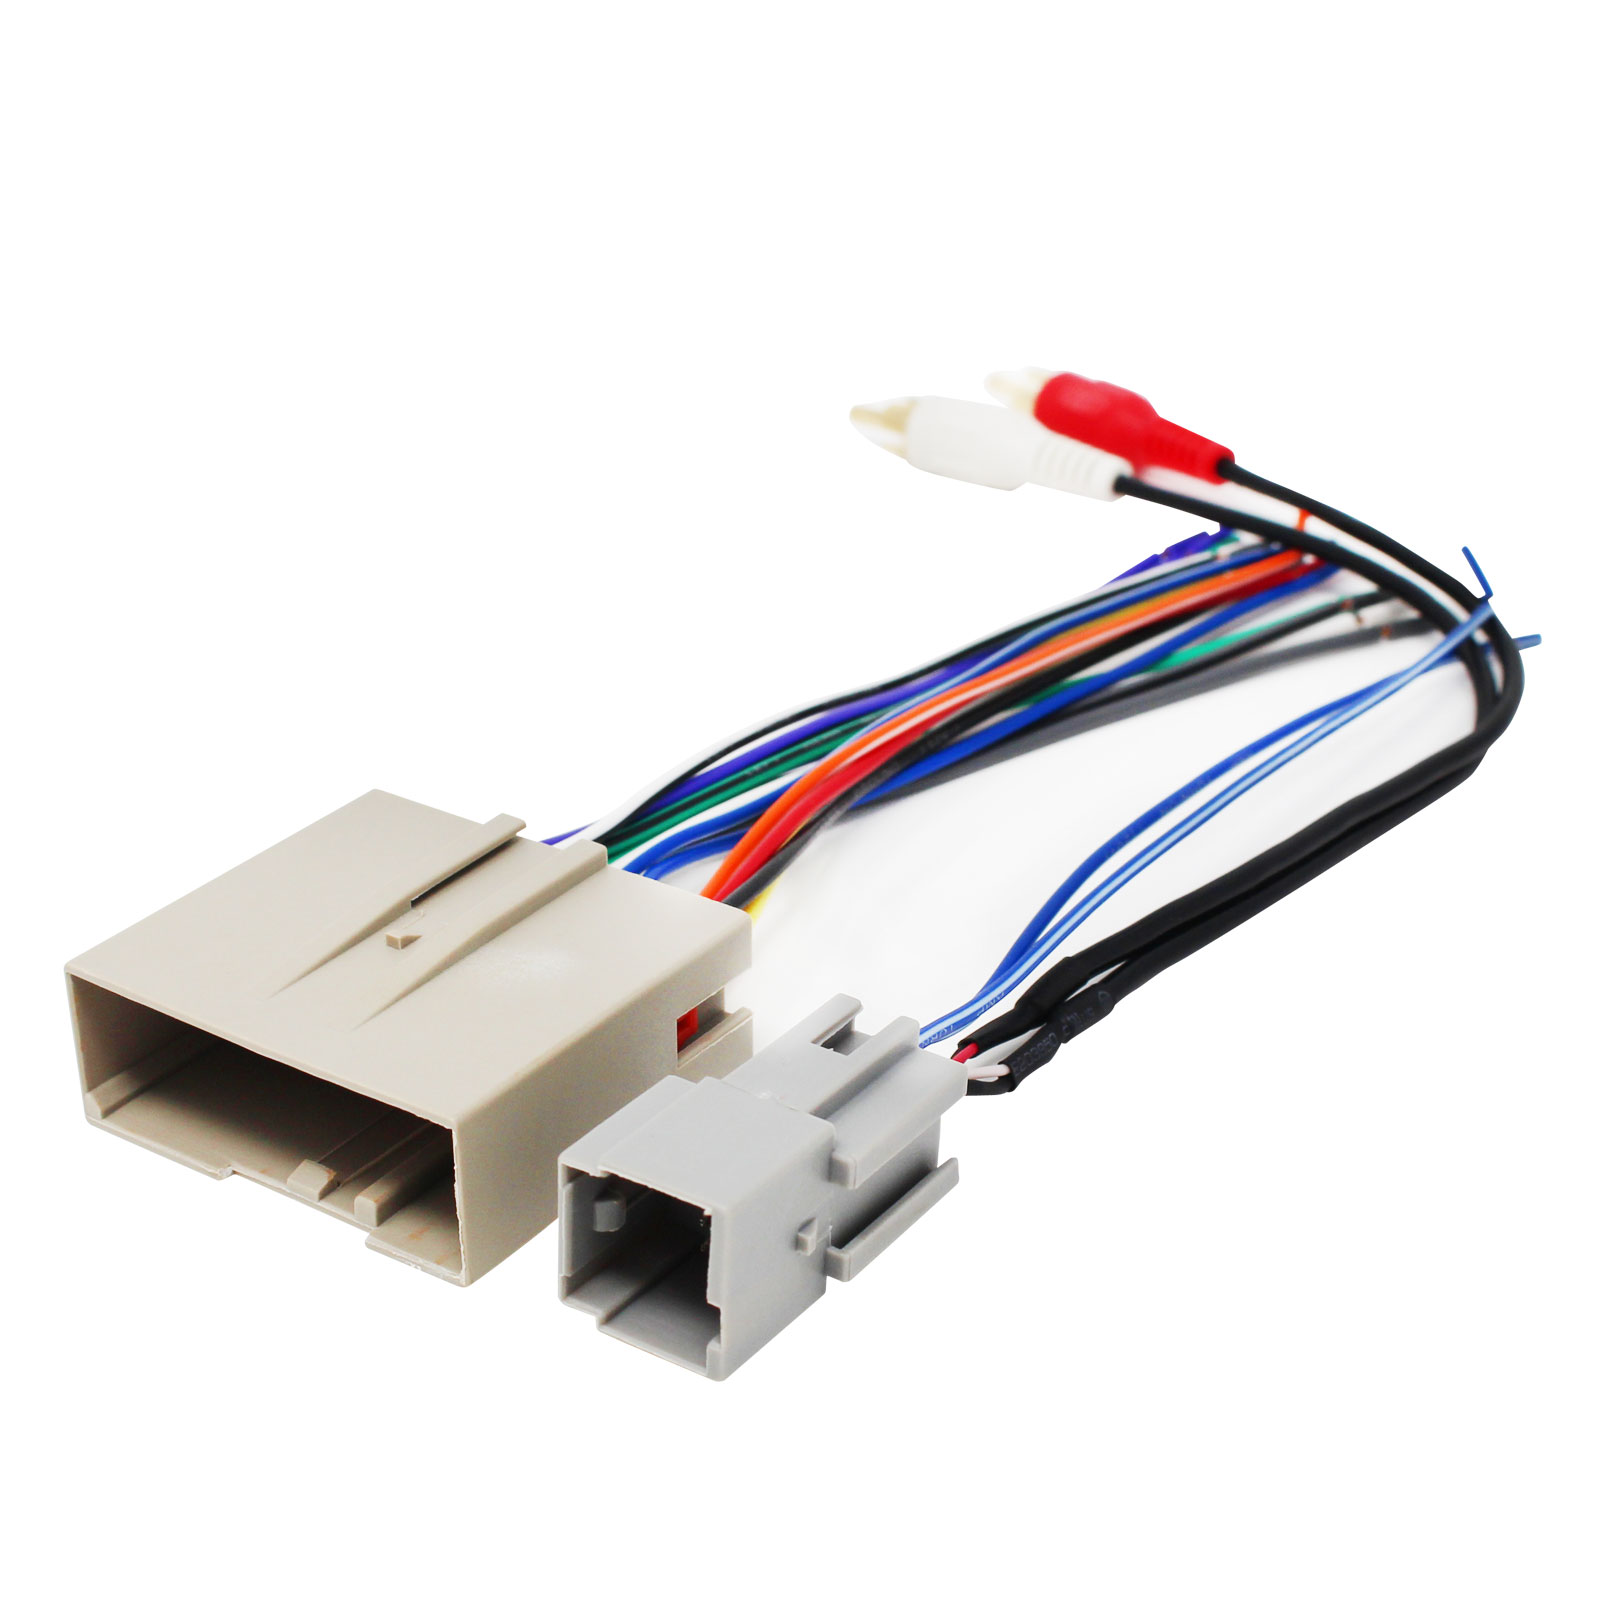 hight resolution of ford stereo wiring harnessreplacement radio wiring harness for 2004 ford f 150 lariat crew cab pickup